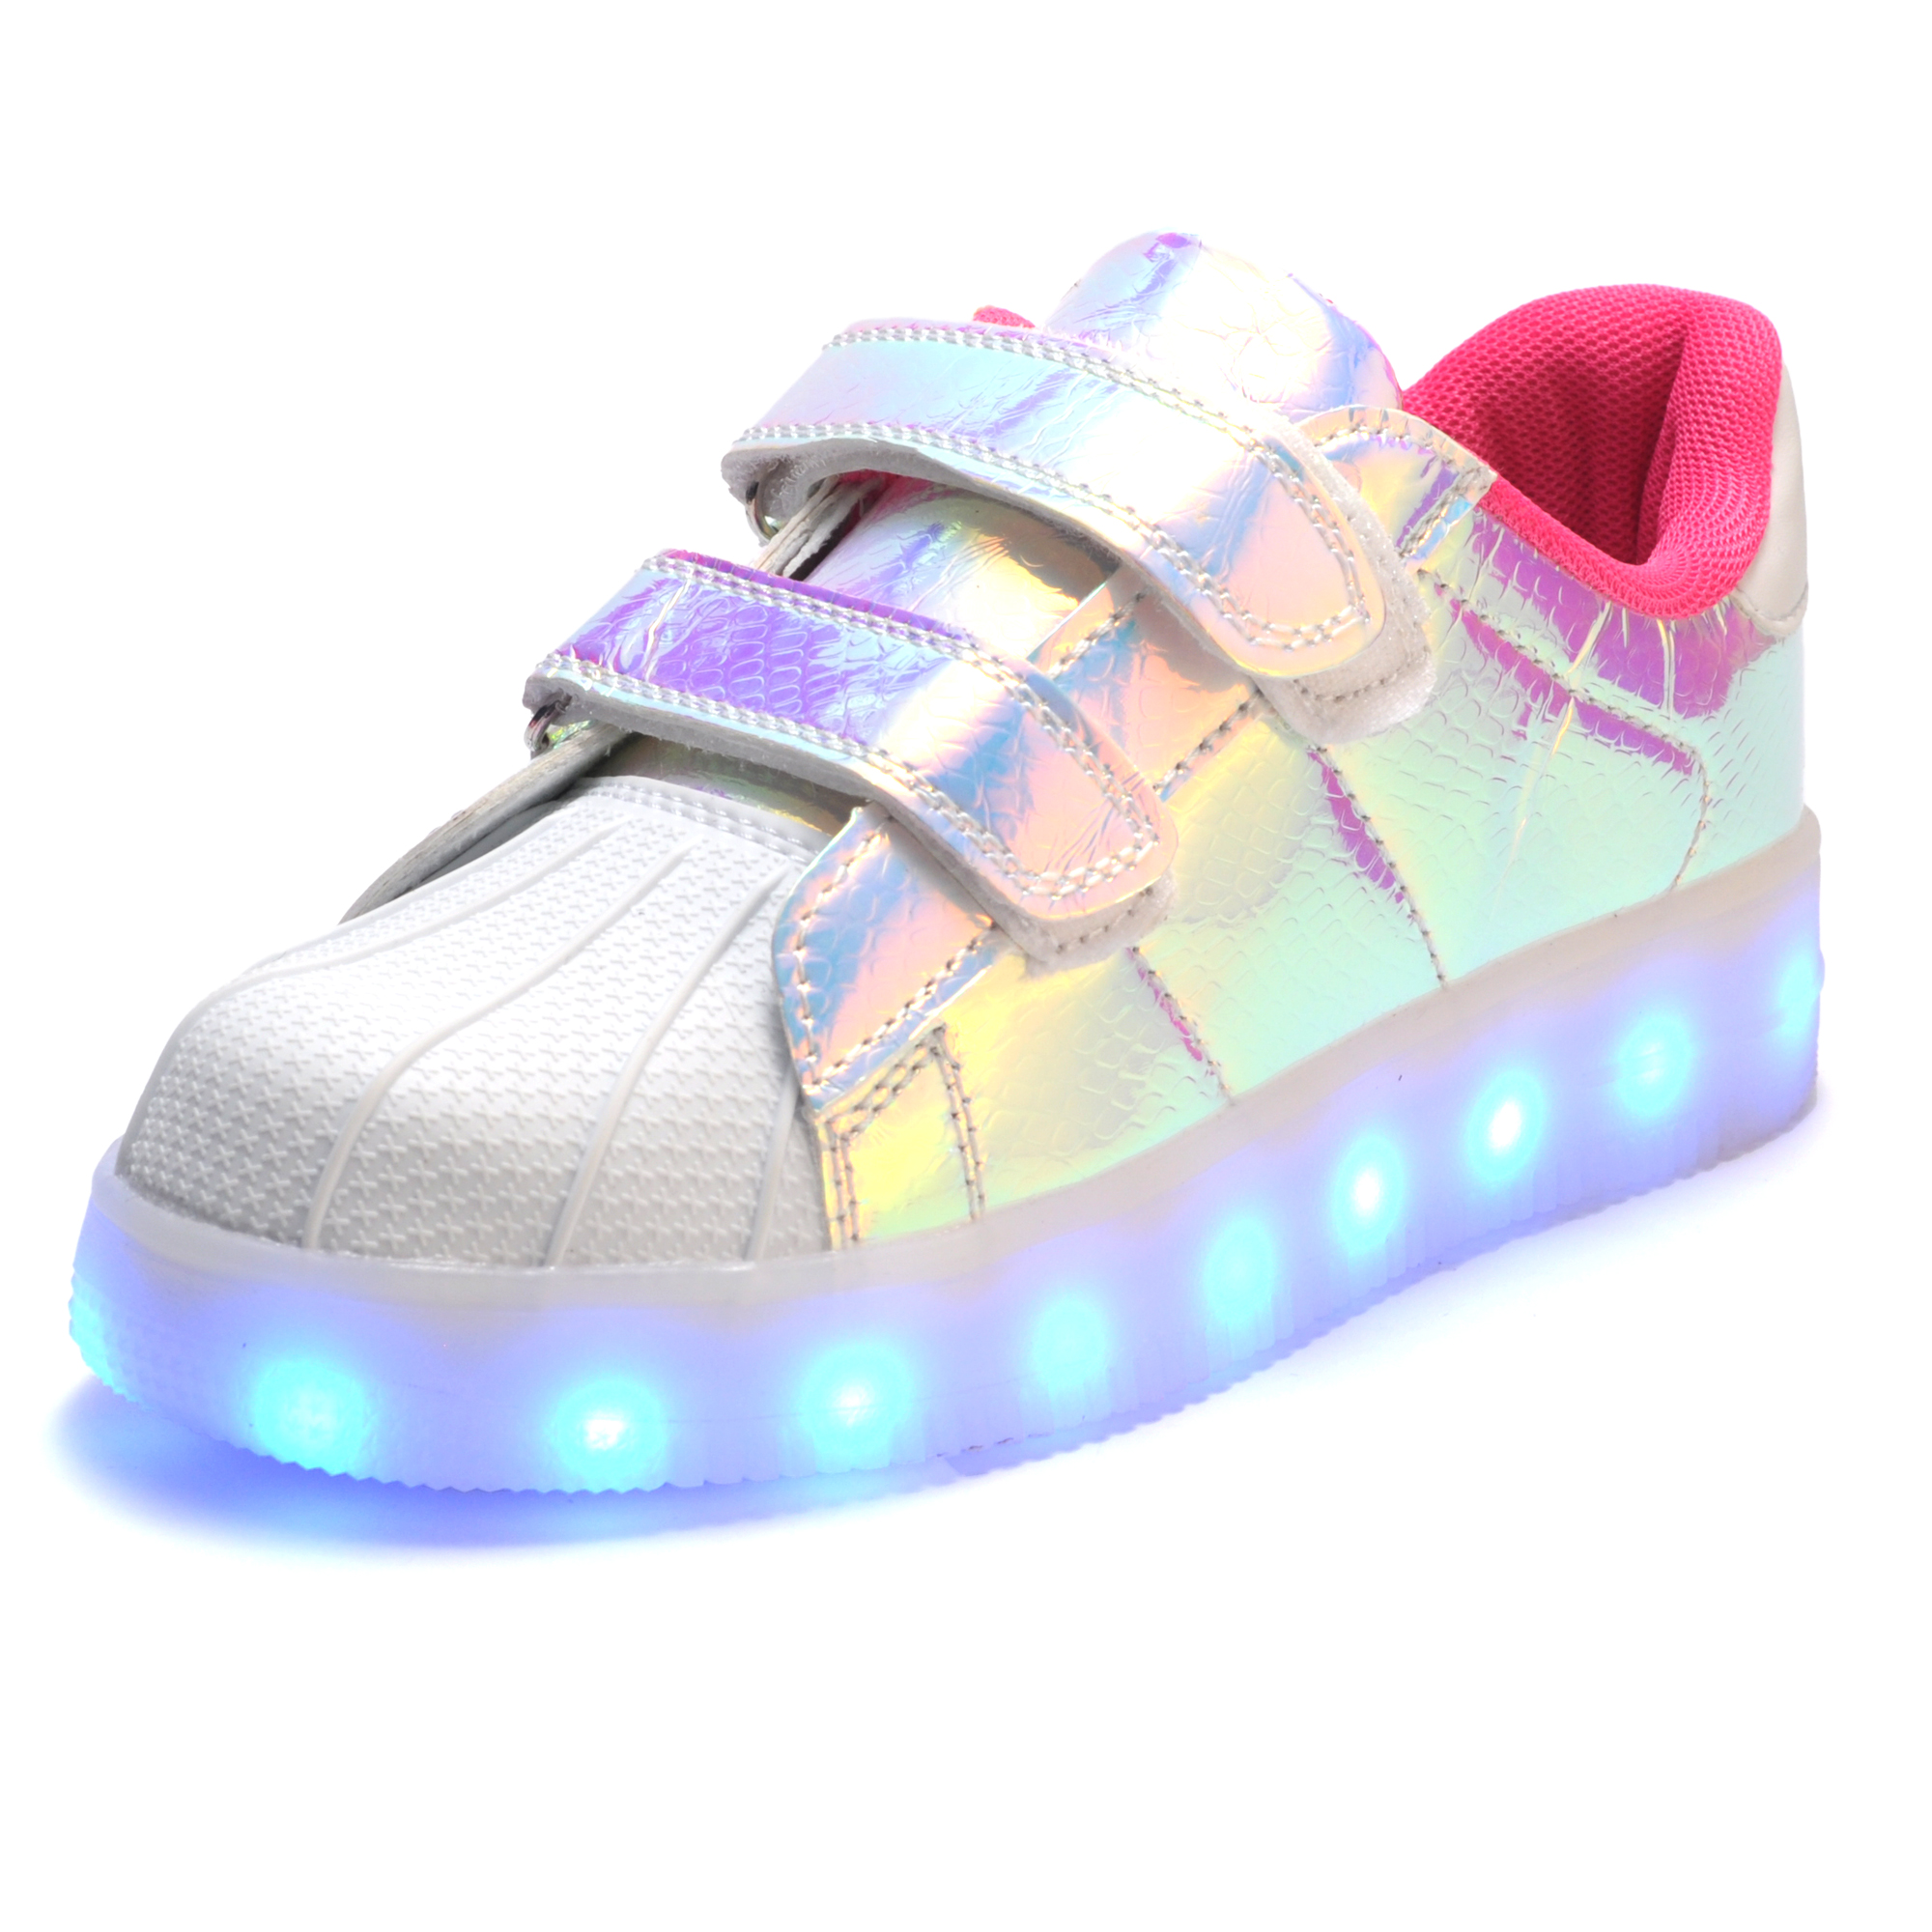 2017 Hot New Spring autumn Kids Sneakers Fashion Luminous Lighted Colorful LED lights Children Shoes Casual